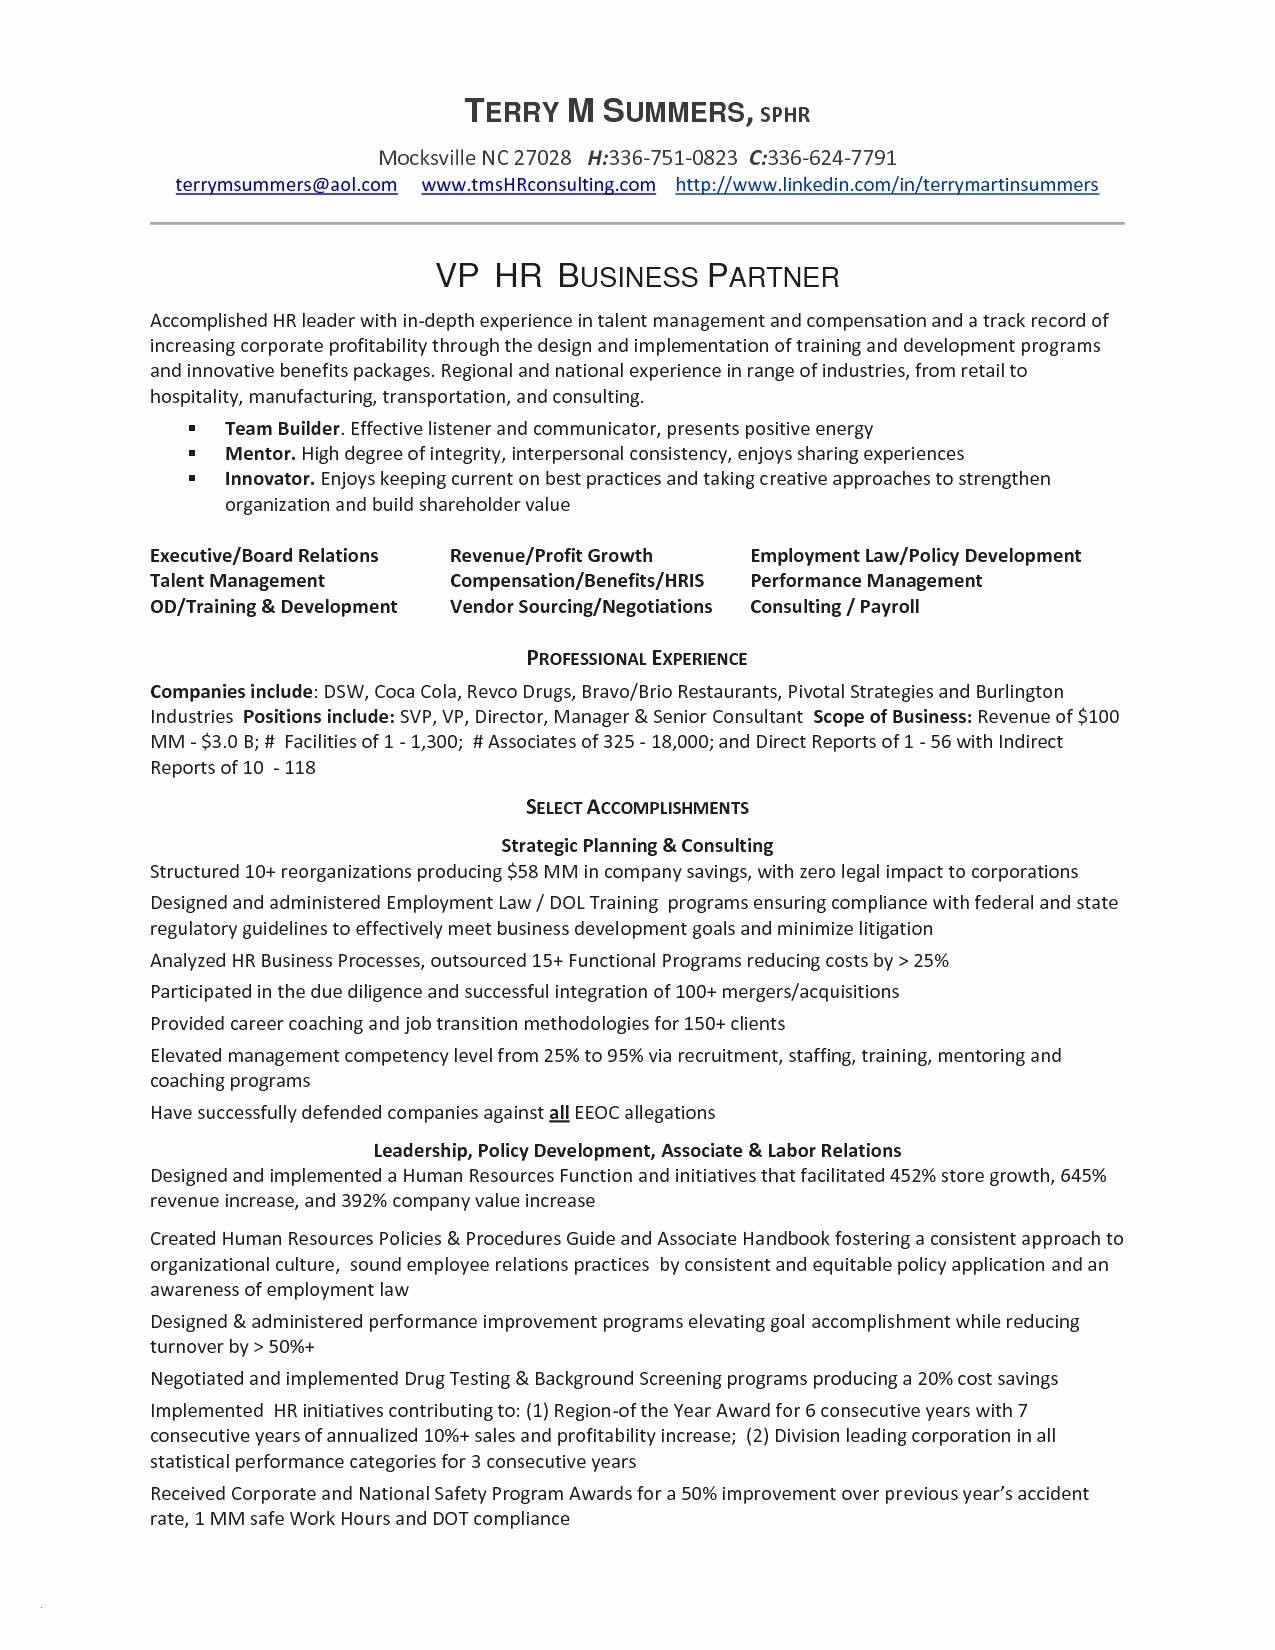 Social Media Manager Resume Template - social Media Proposal Template Unique Sales and Marketing Resume New